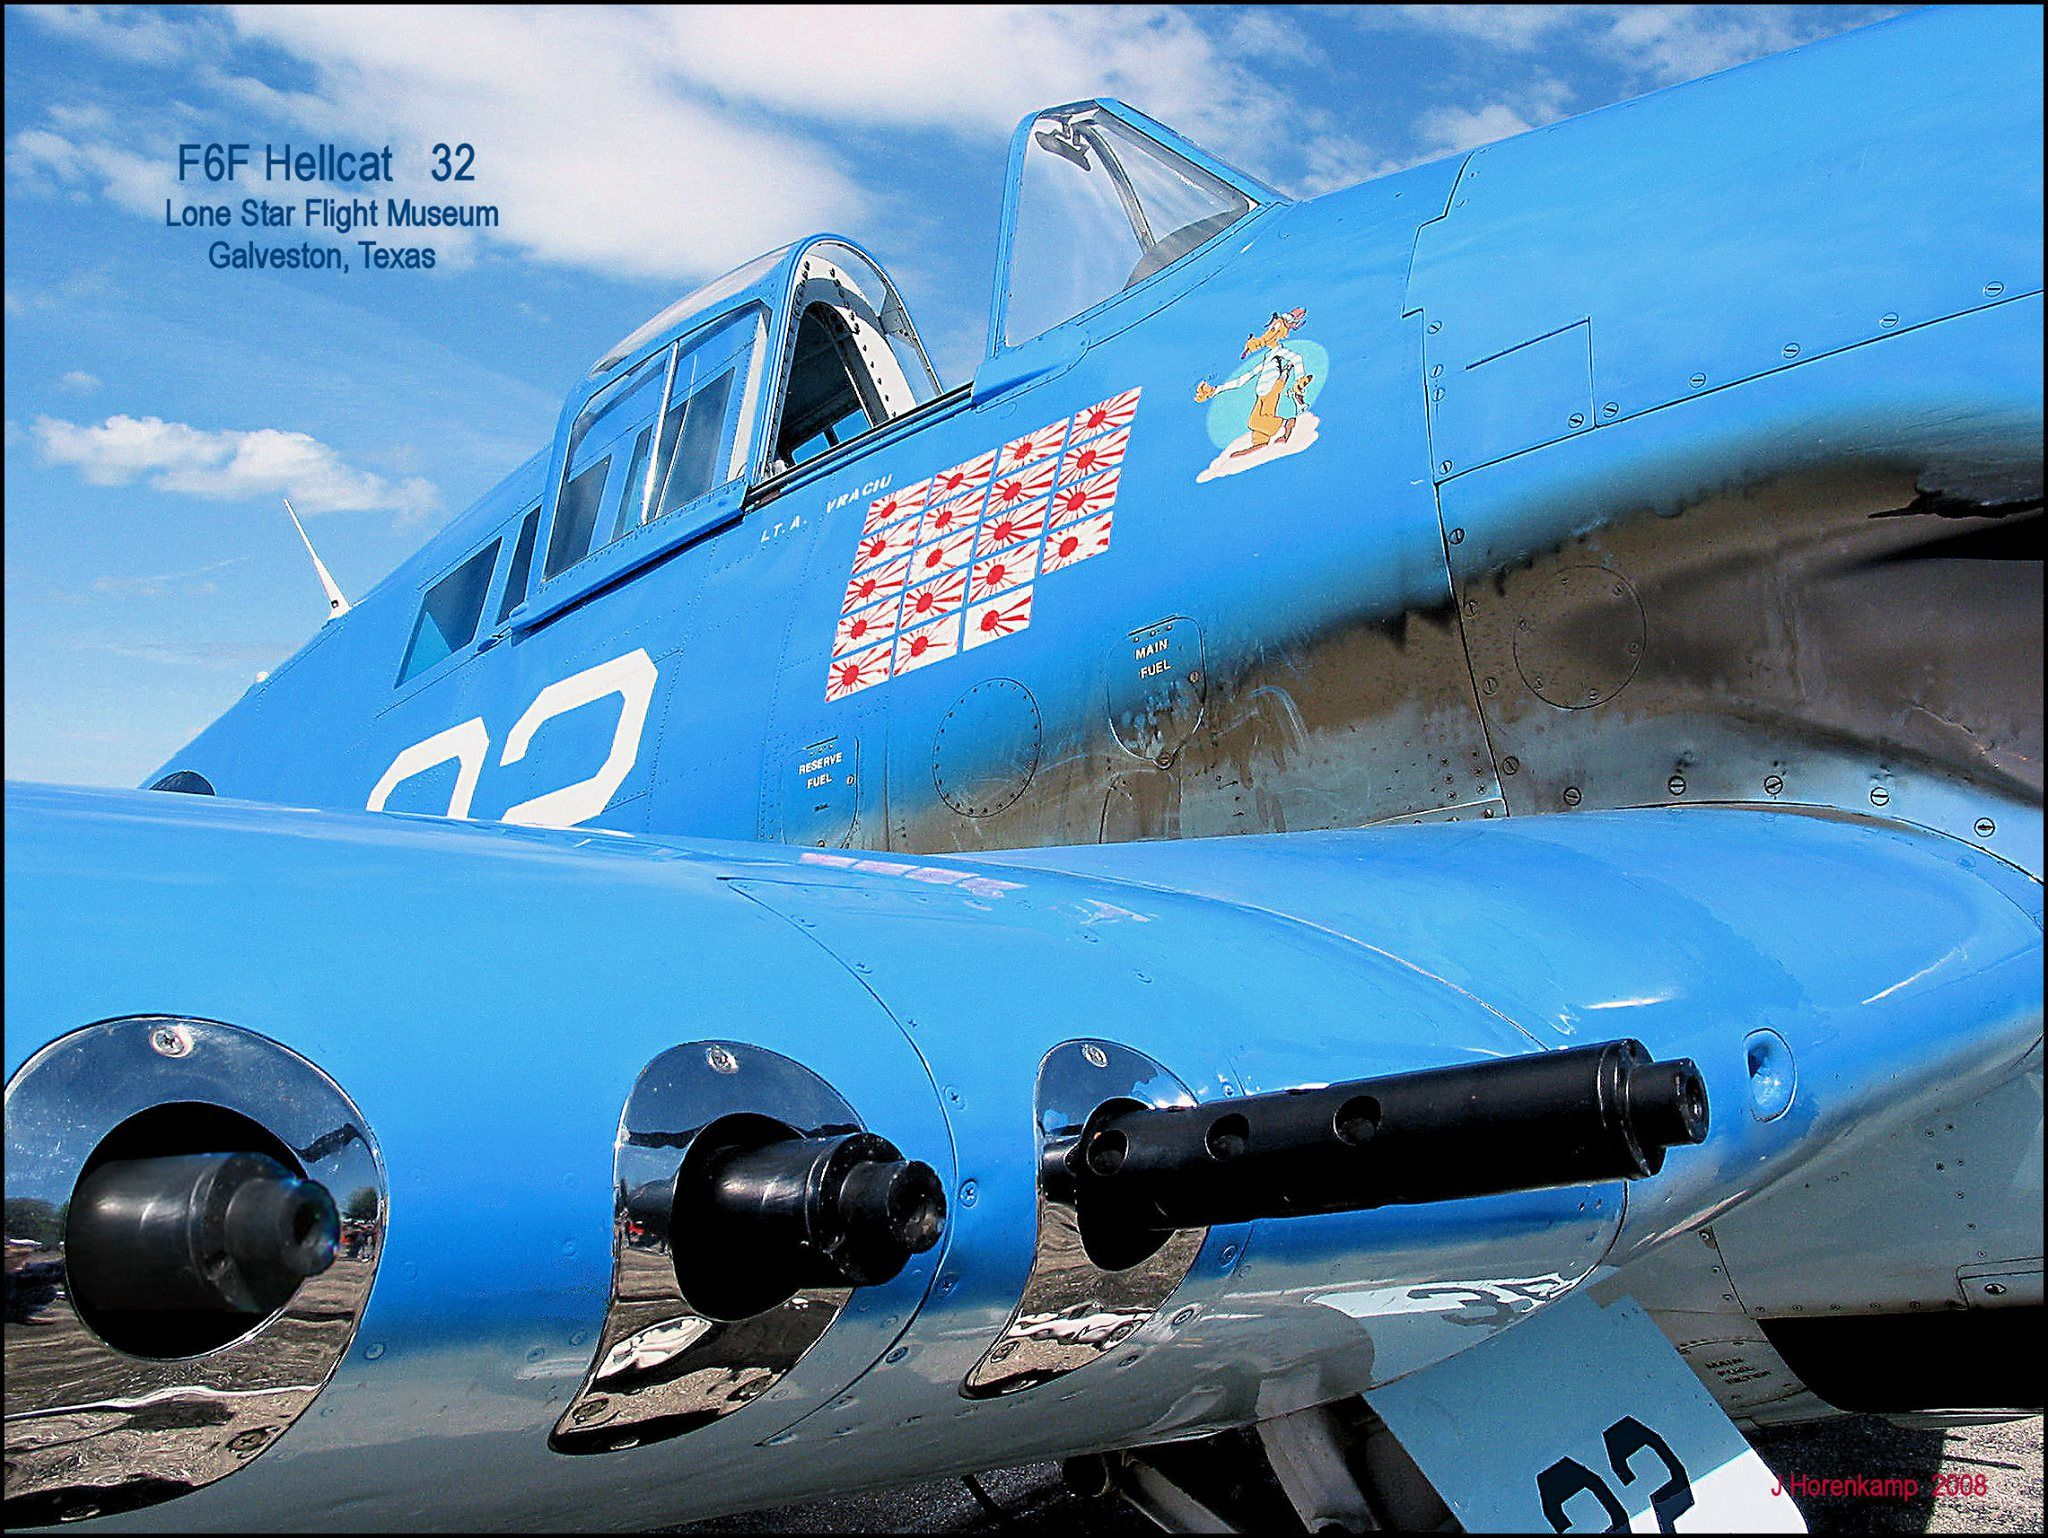 F6FHellcat. These images taken at the Yankee Air Museum's